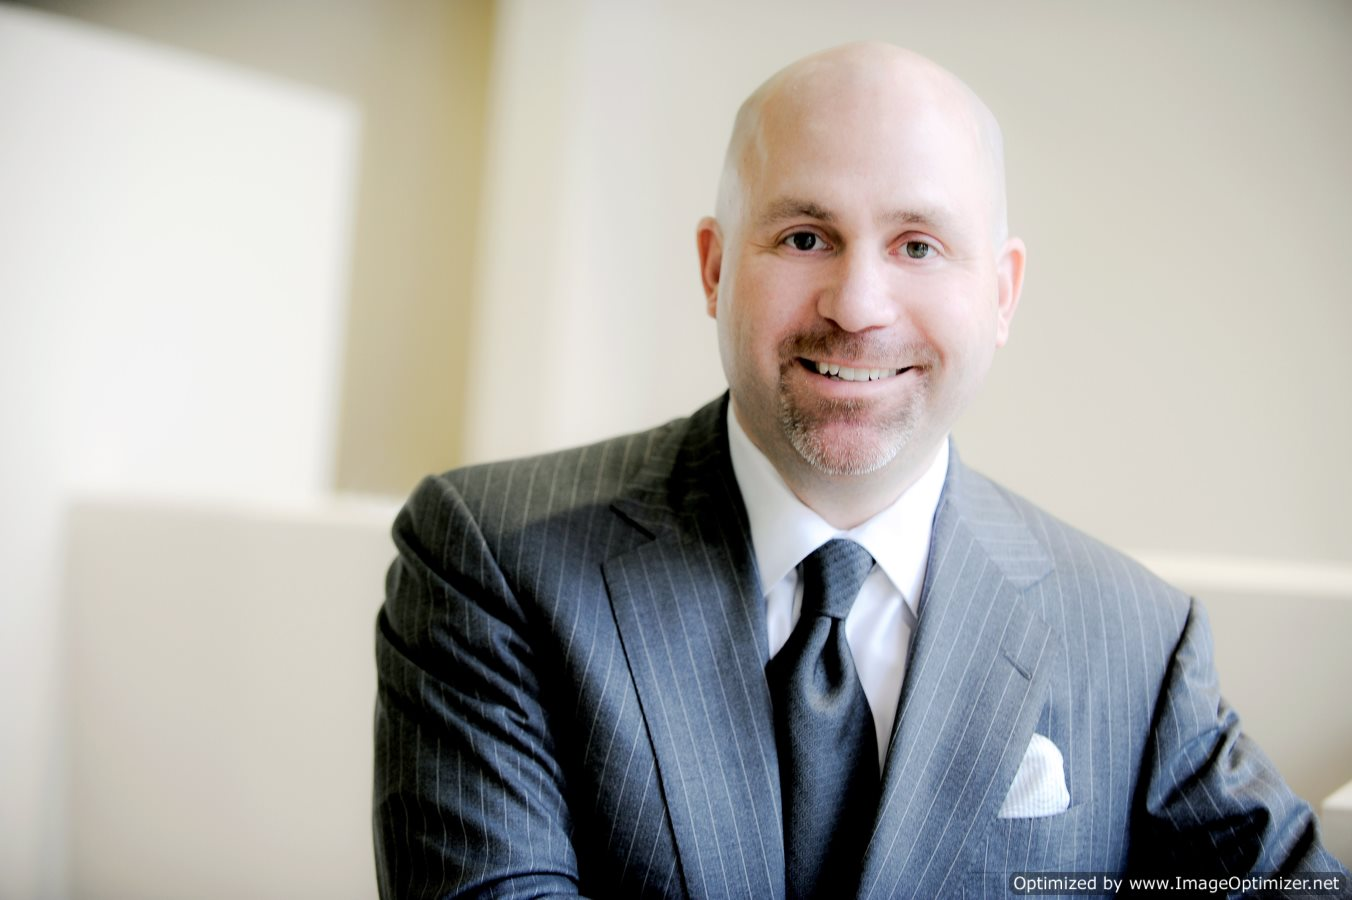 Ohio-Based Attorney Ian Friedman Finds Satisfaction in Criminal Law